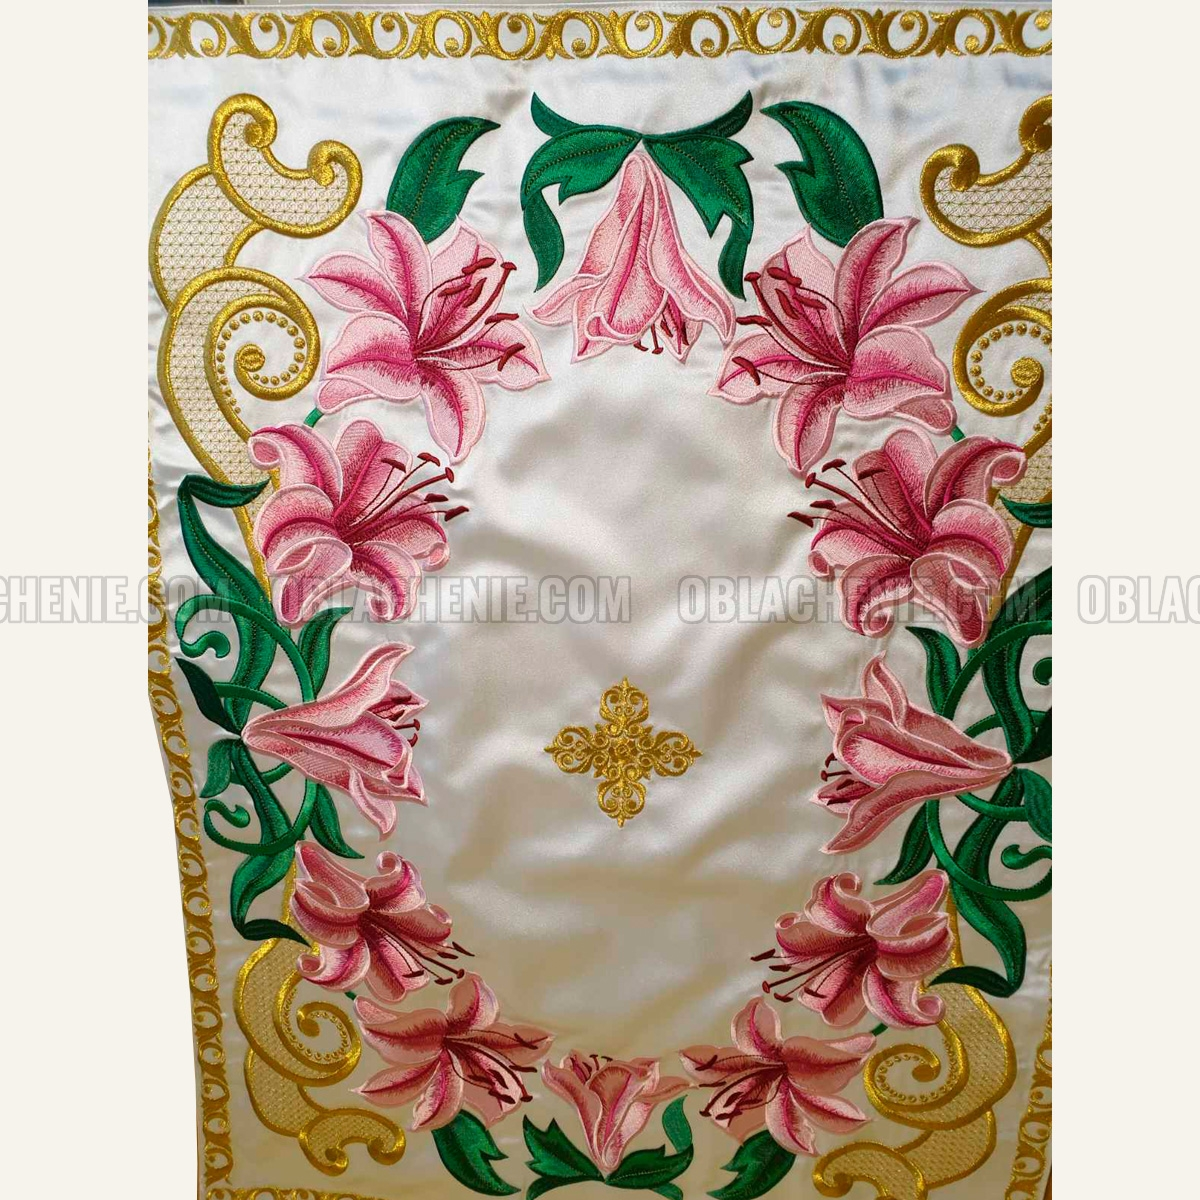 TABLE VESTMENTS 11008